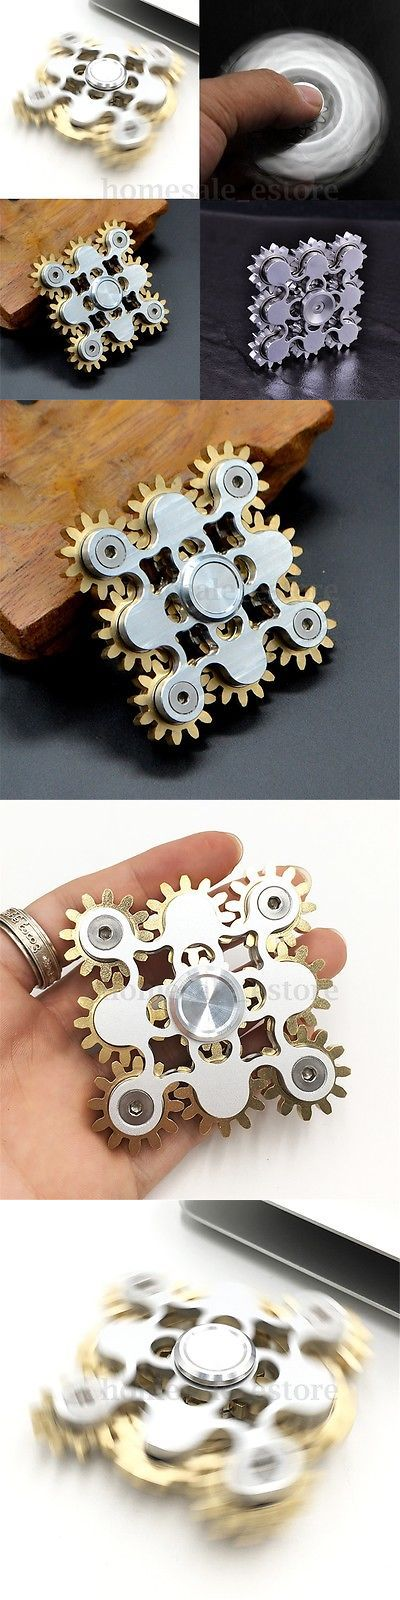 Squeezable Stress Relievers: Nine Gears Linkage Rotate Hand Spinner Adult Finger Spiral Stress Relieve Toys -> BUY IT NOW ONLY: $38.99 on eBay!